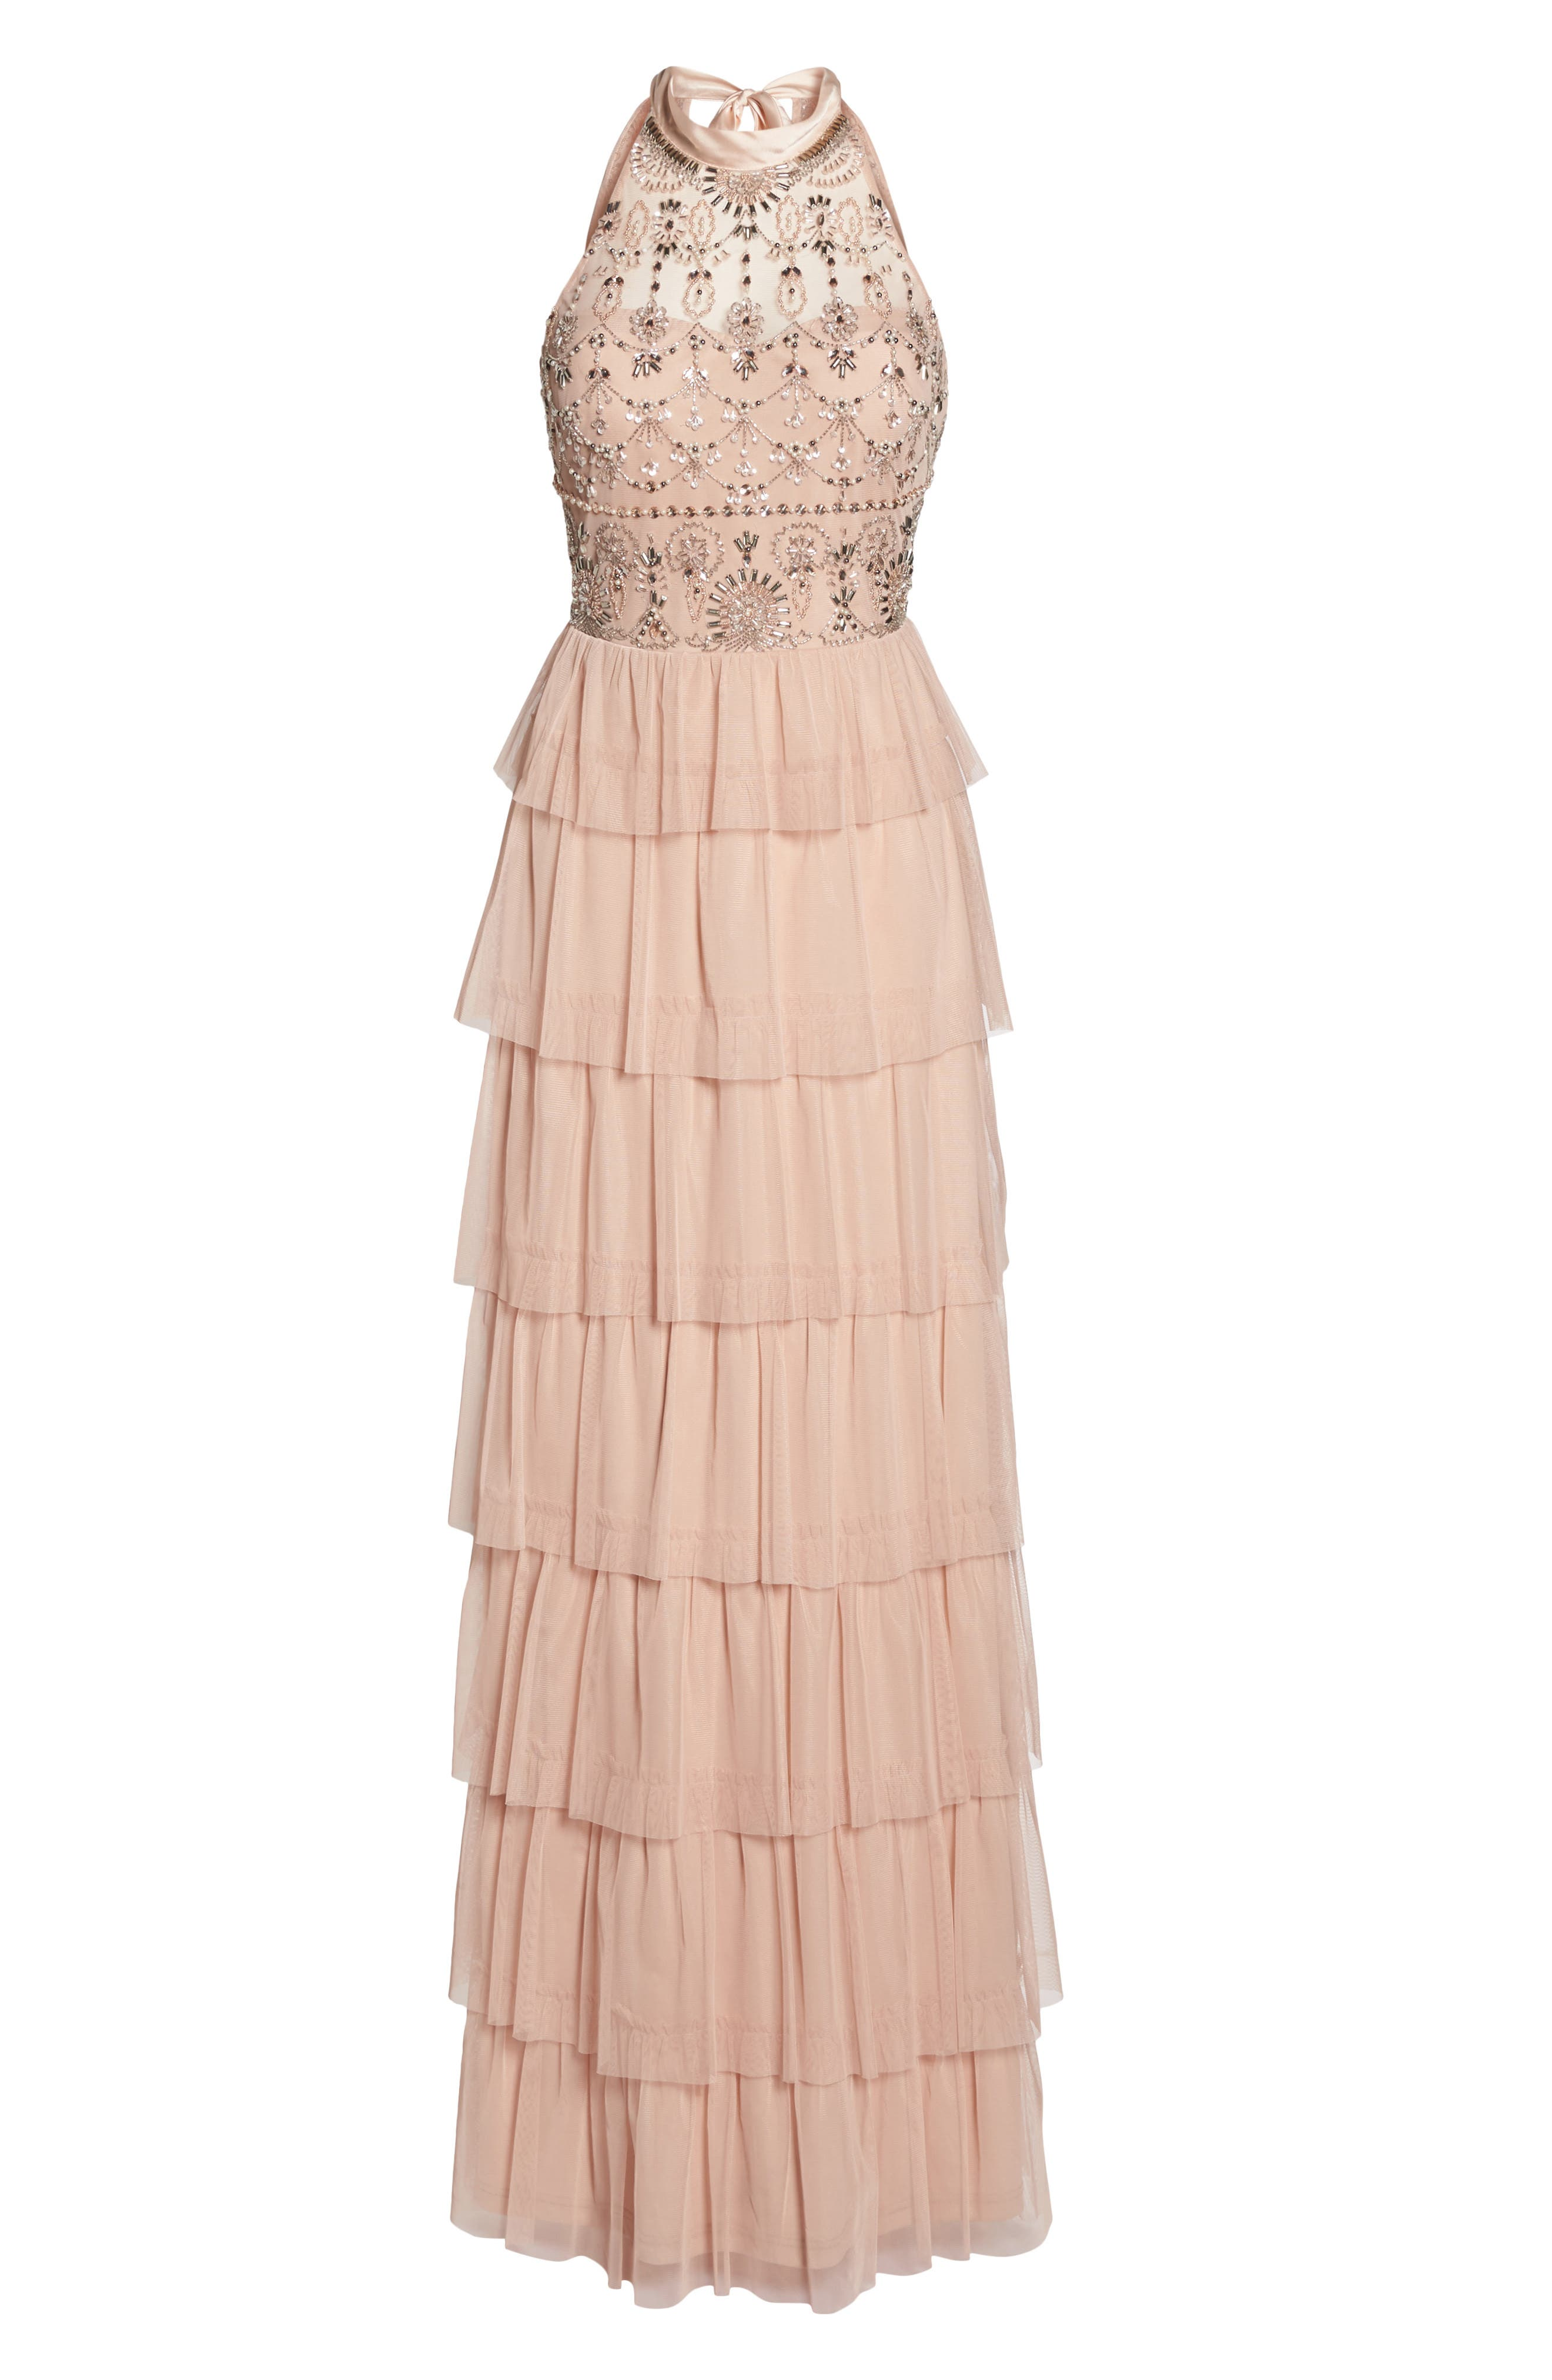 Embellished Tiered Maxi Dress,                             Alternate thumbnail 6, color,                             Blush